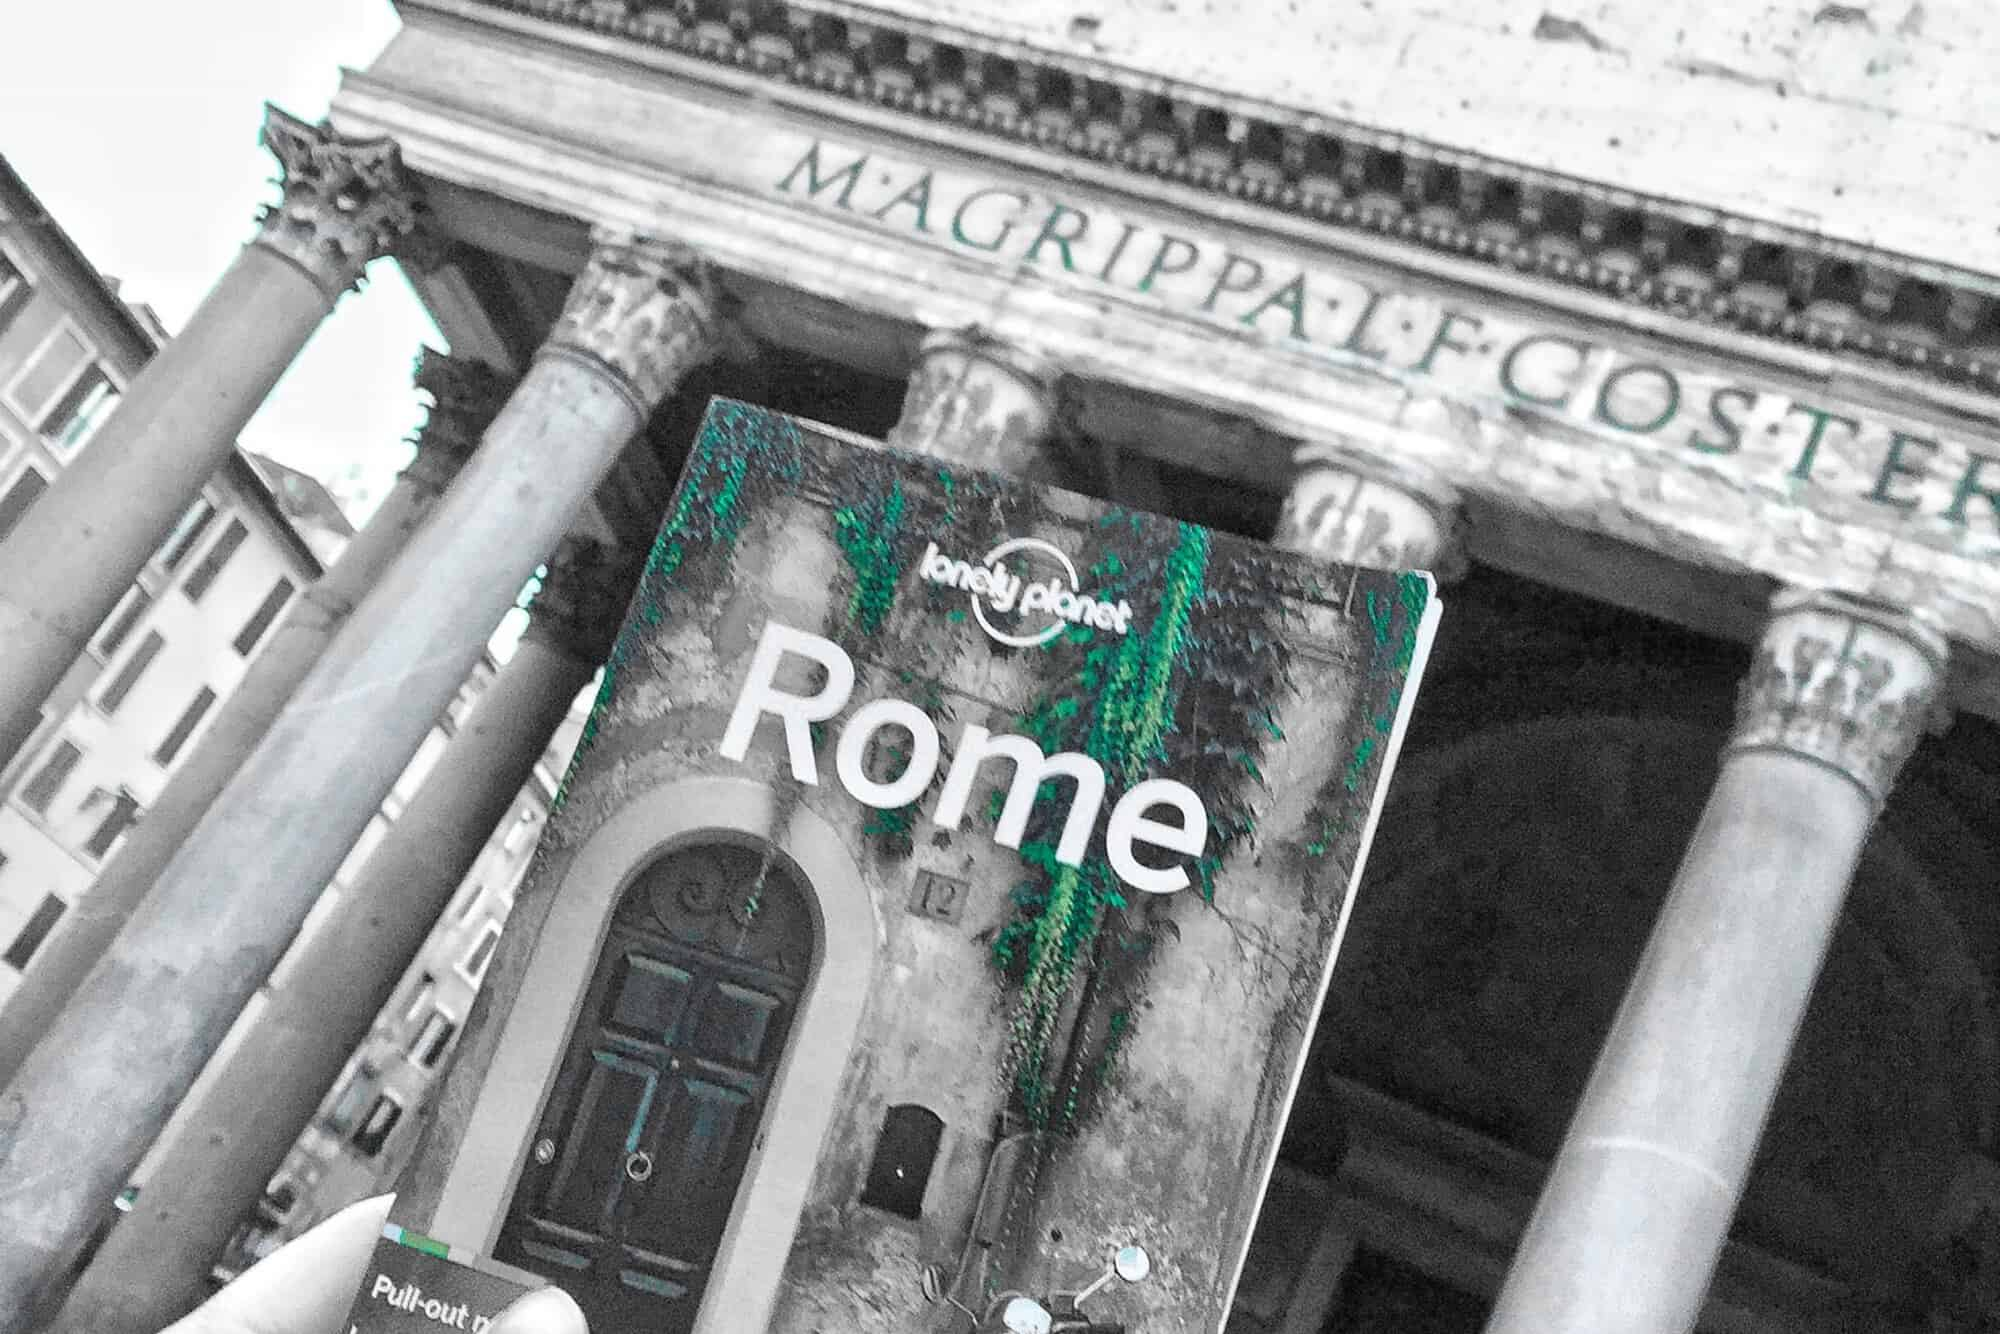 Italian Christmas Gift Ideas: Lonely Planet Rome book on location